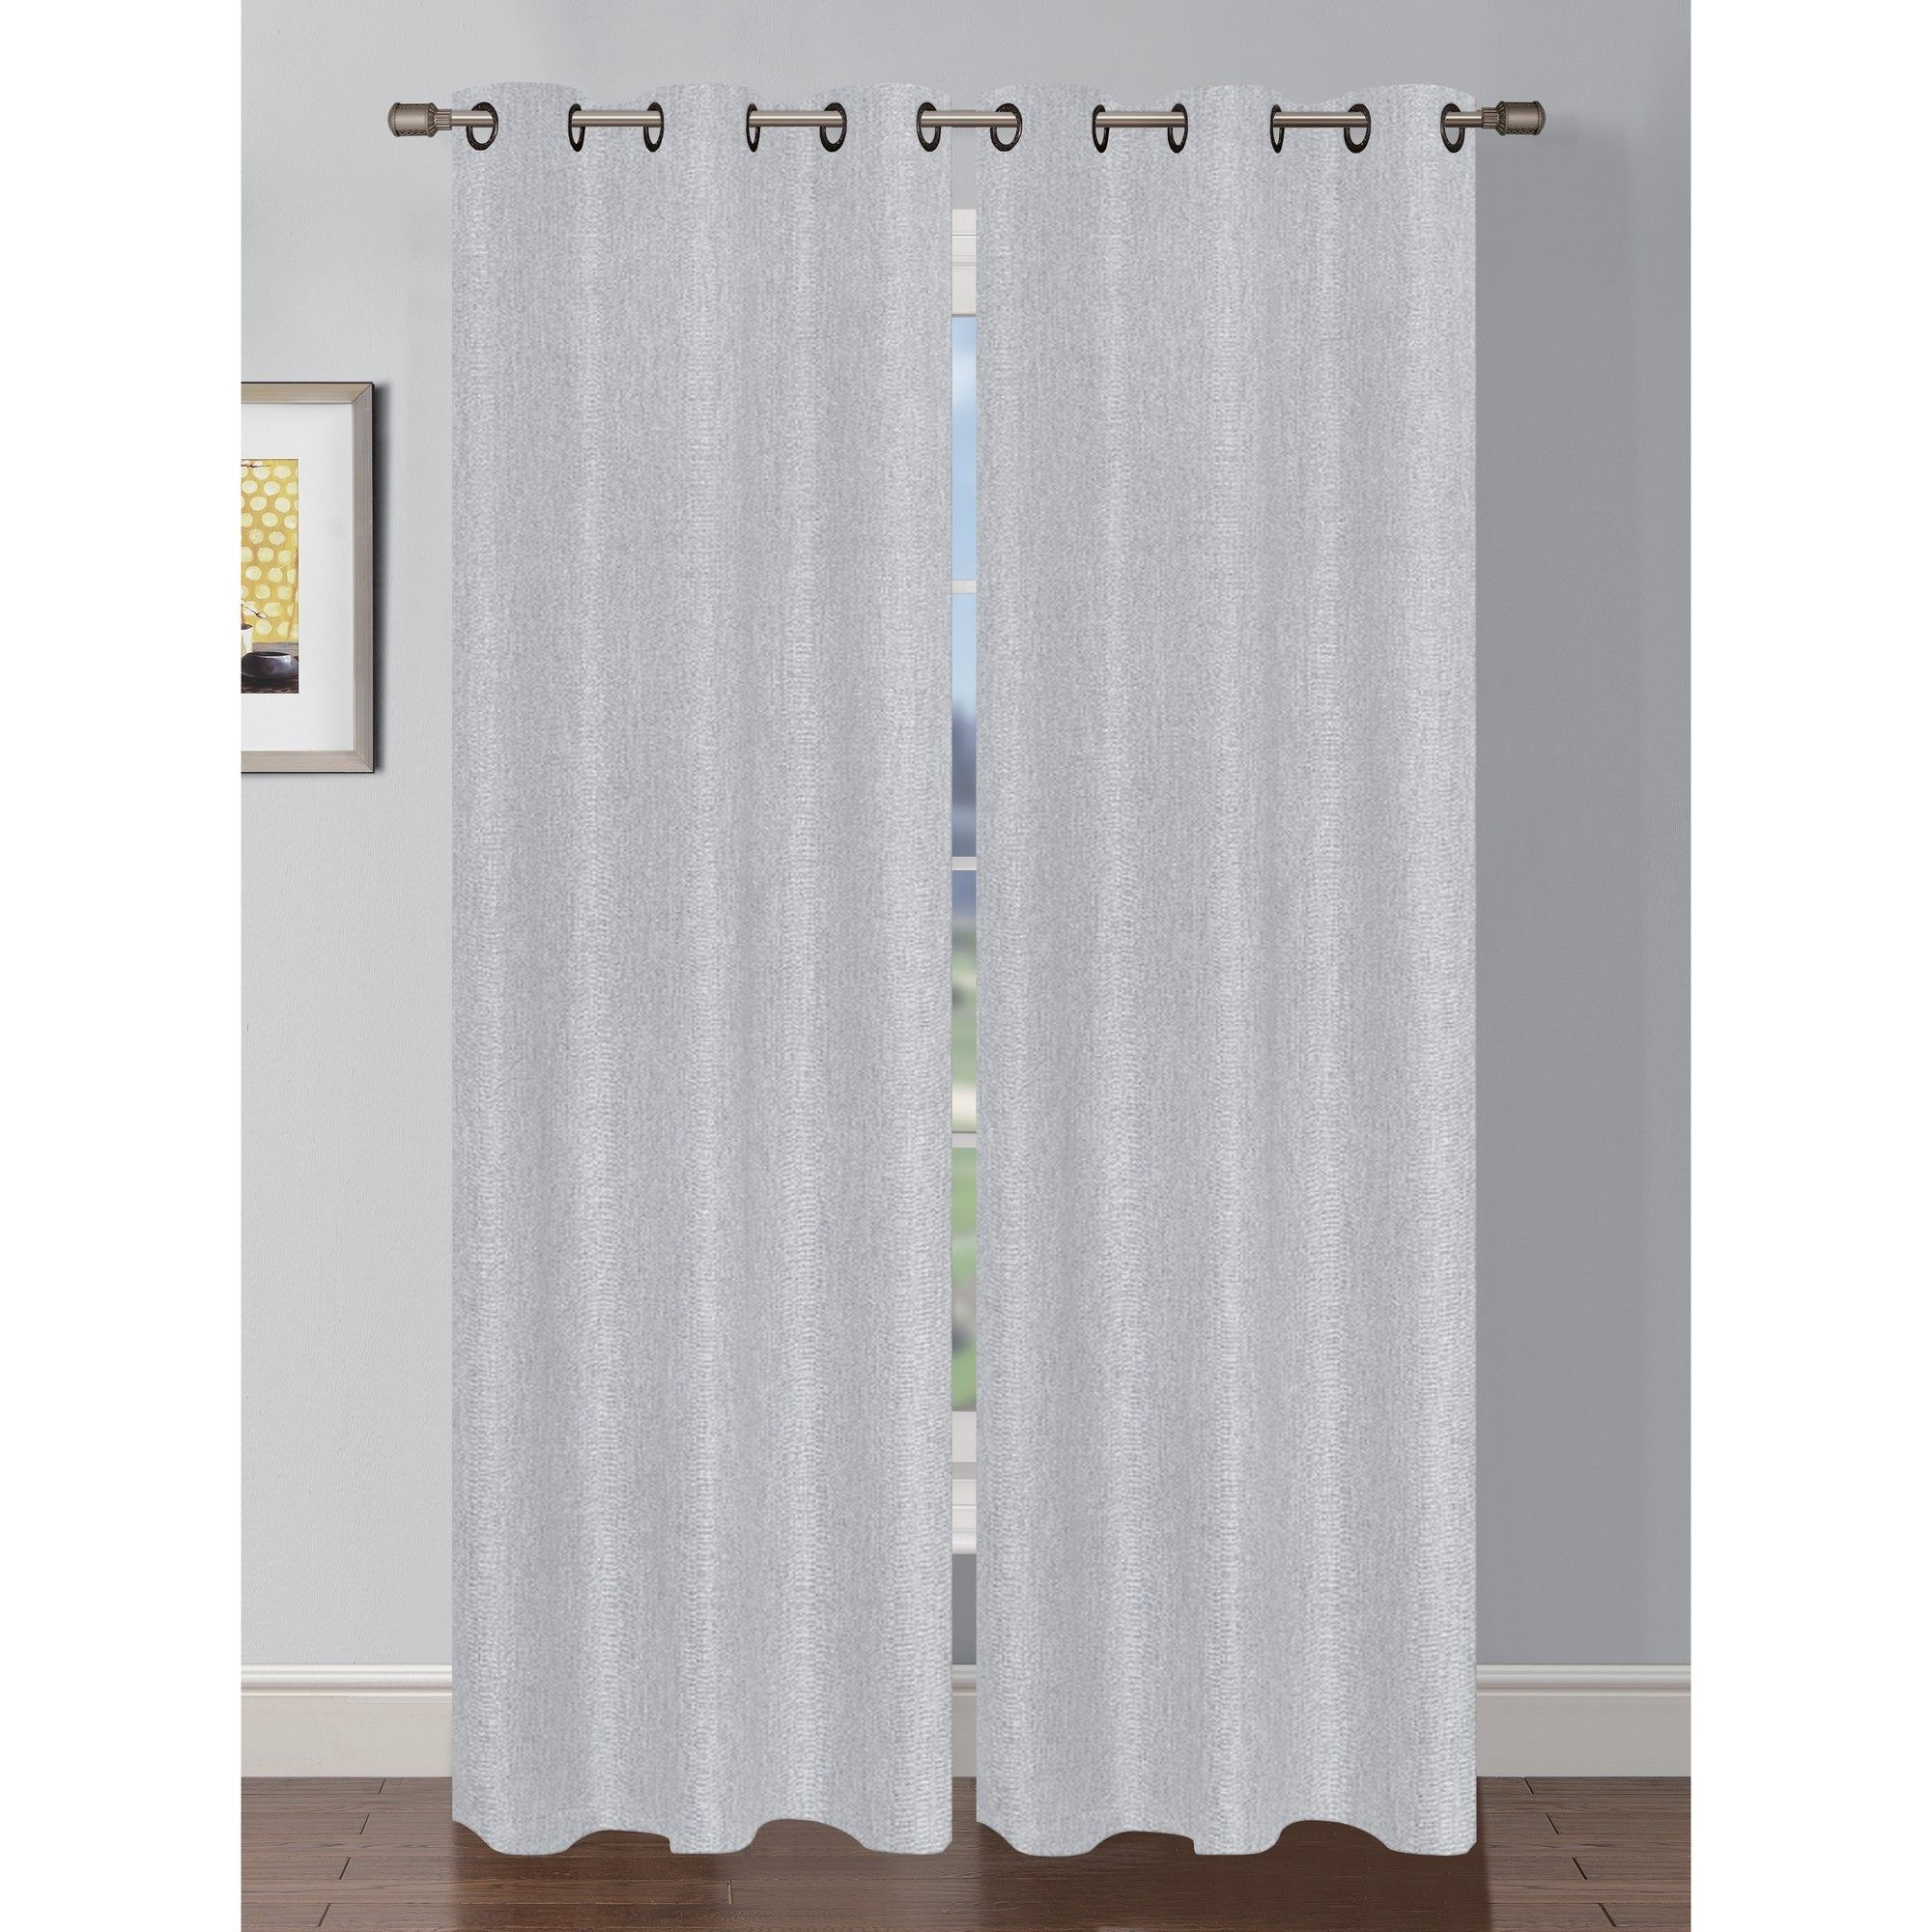 Oscar Luxury Faux Linen Shimmer Grommet Curtain Panel